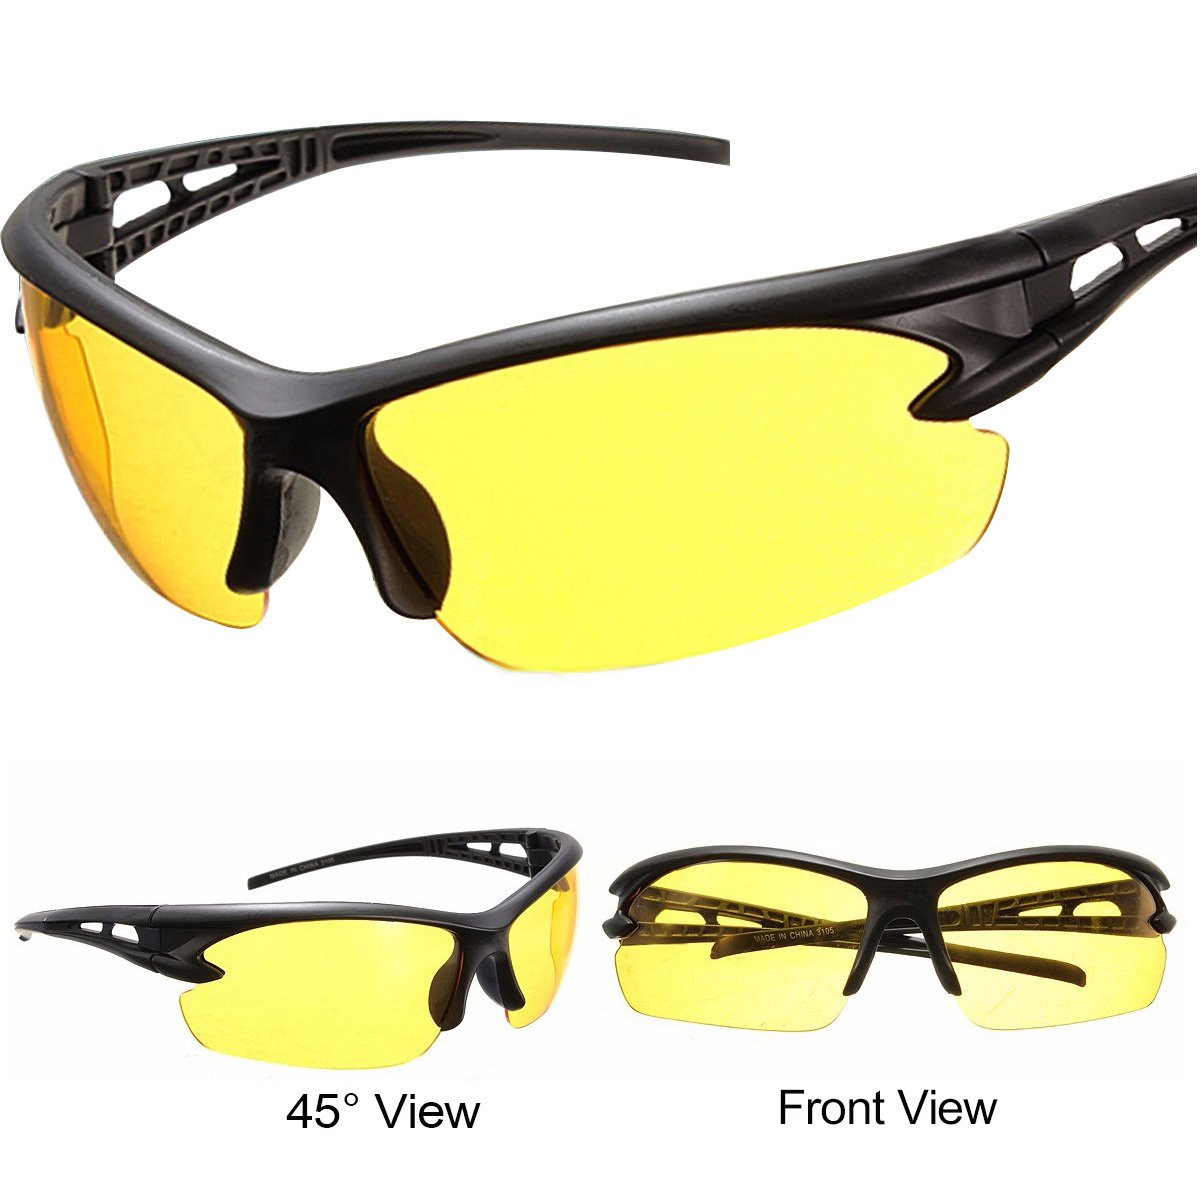 8b238e1994  YELLOW TINT LENS ▻The yellow shades with the Anti-Glare technology provide  you a HD clarity   safety street vision at night